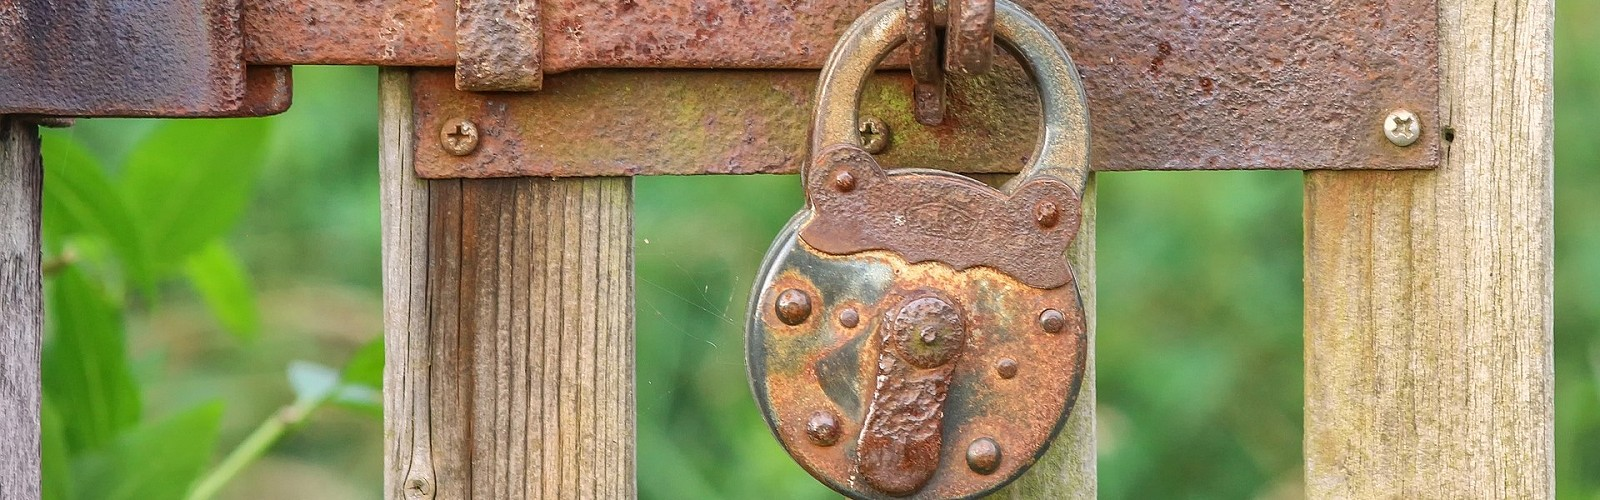 rusty padlock on a garden gate (pixabay)